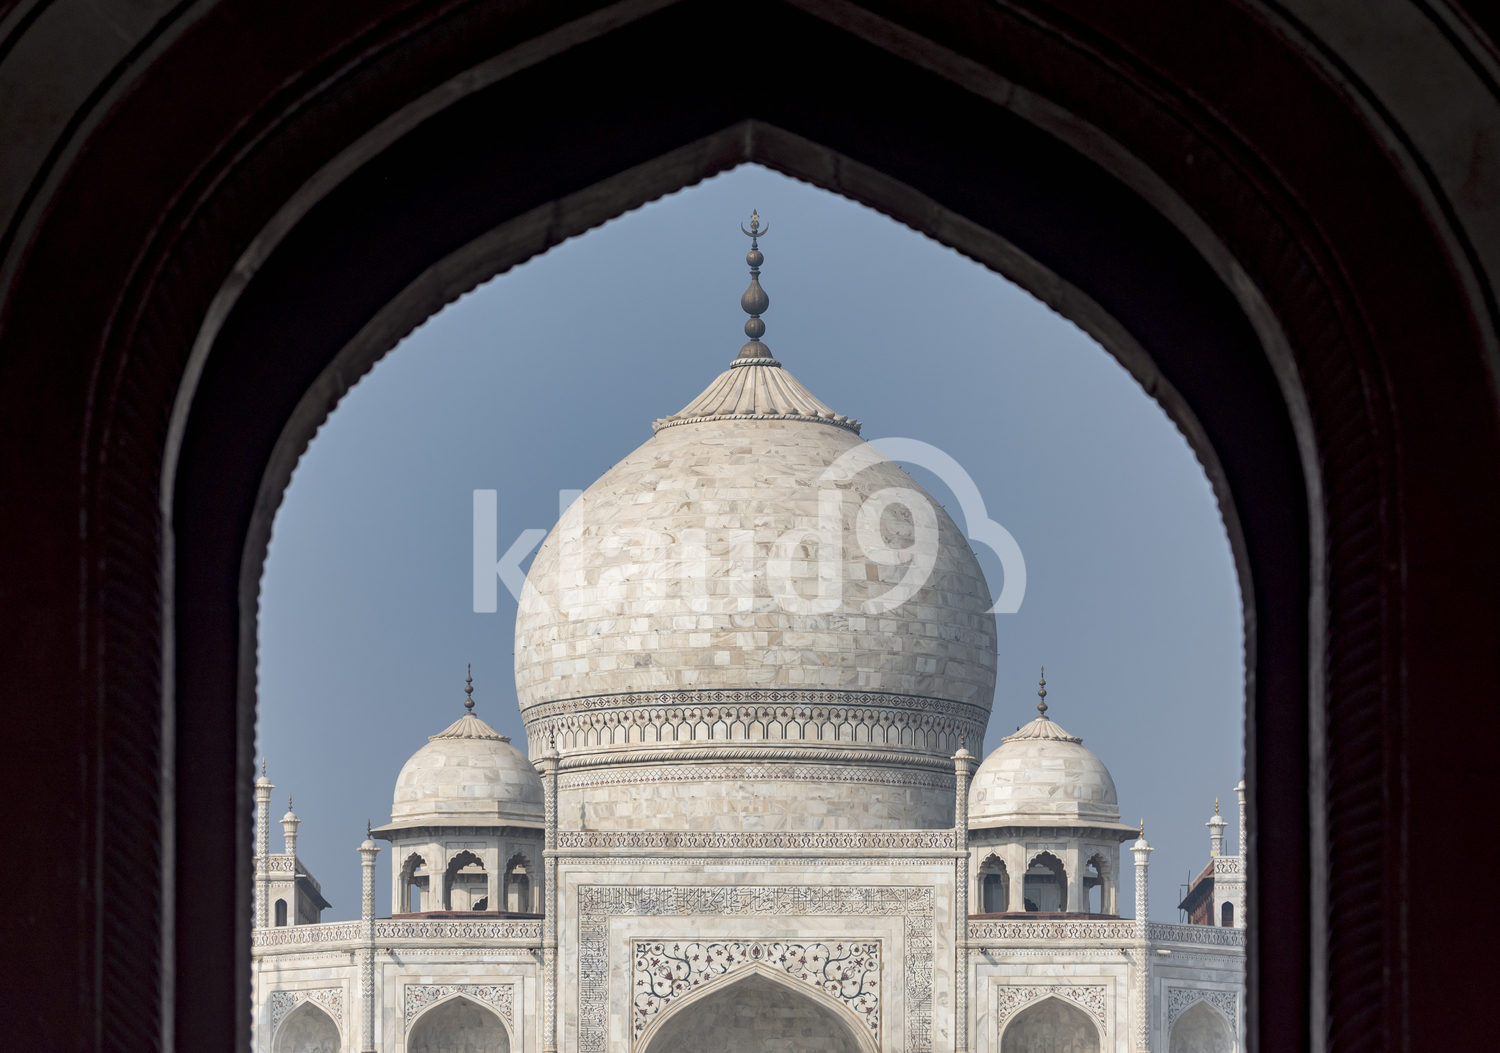 The beautiful Taj Mahal, India